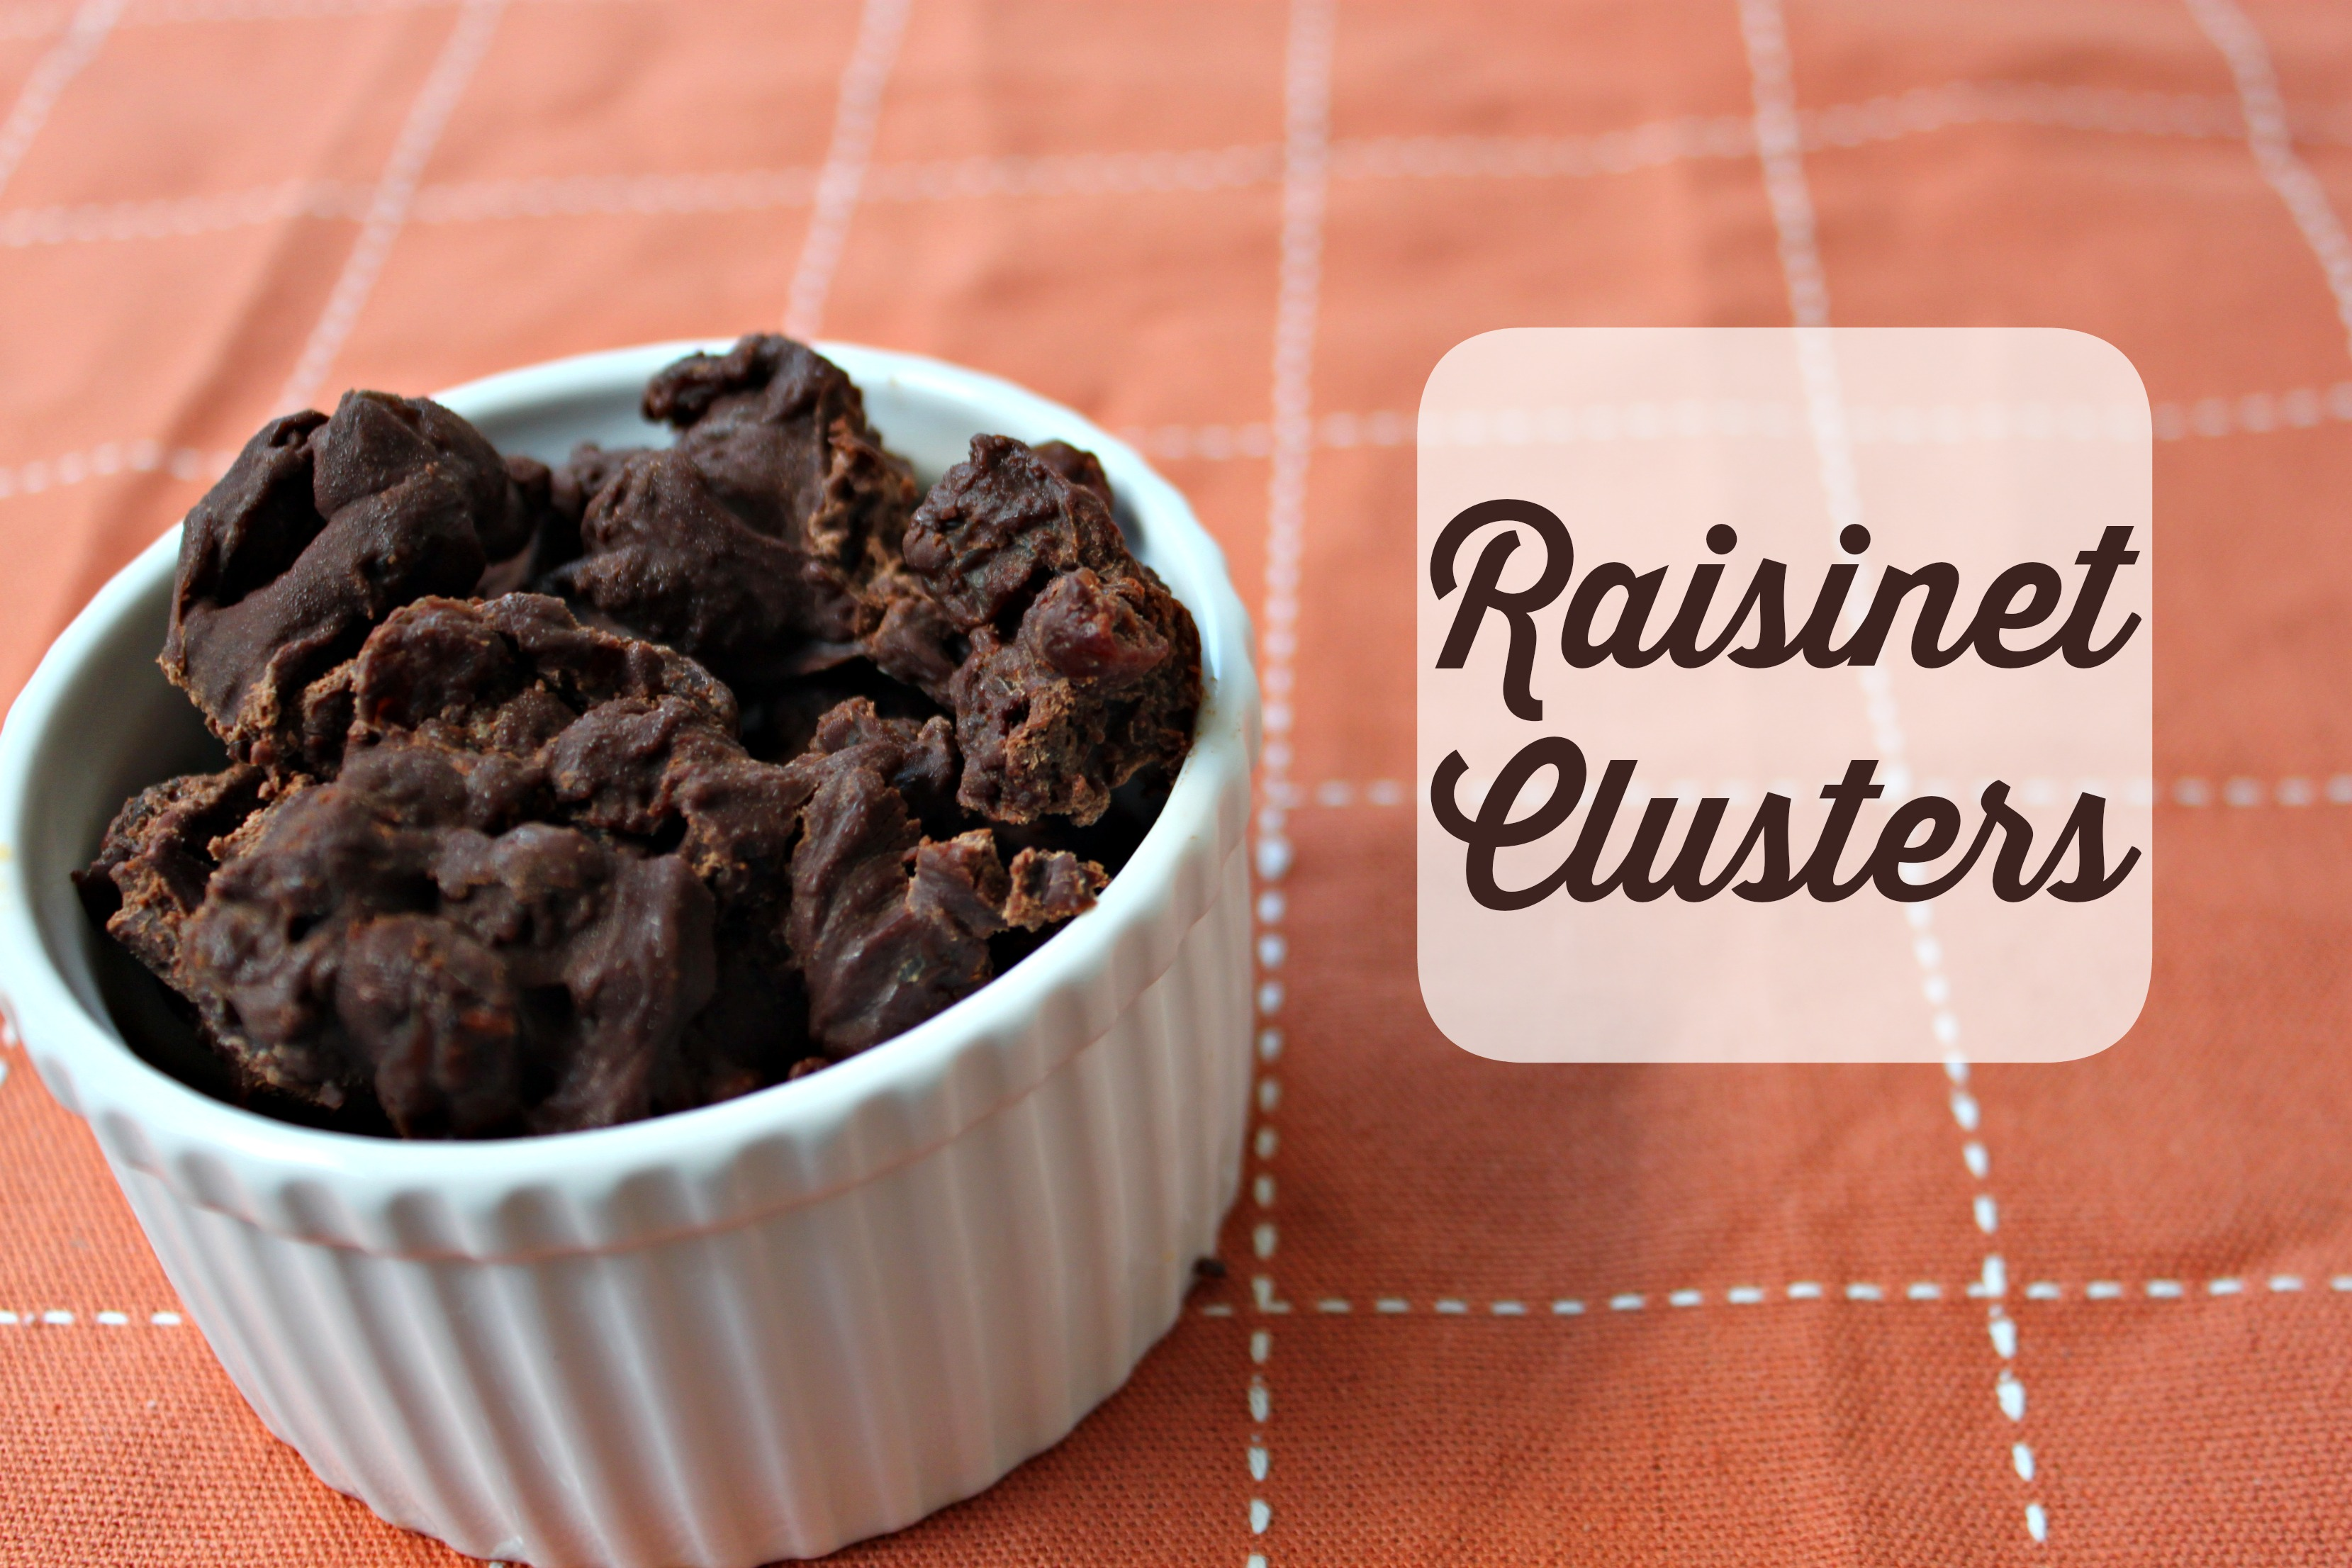 National Chocolate-Covered Raisins Day | Raisinet Clusters – The ...